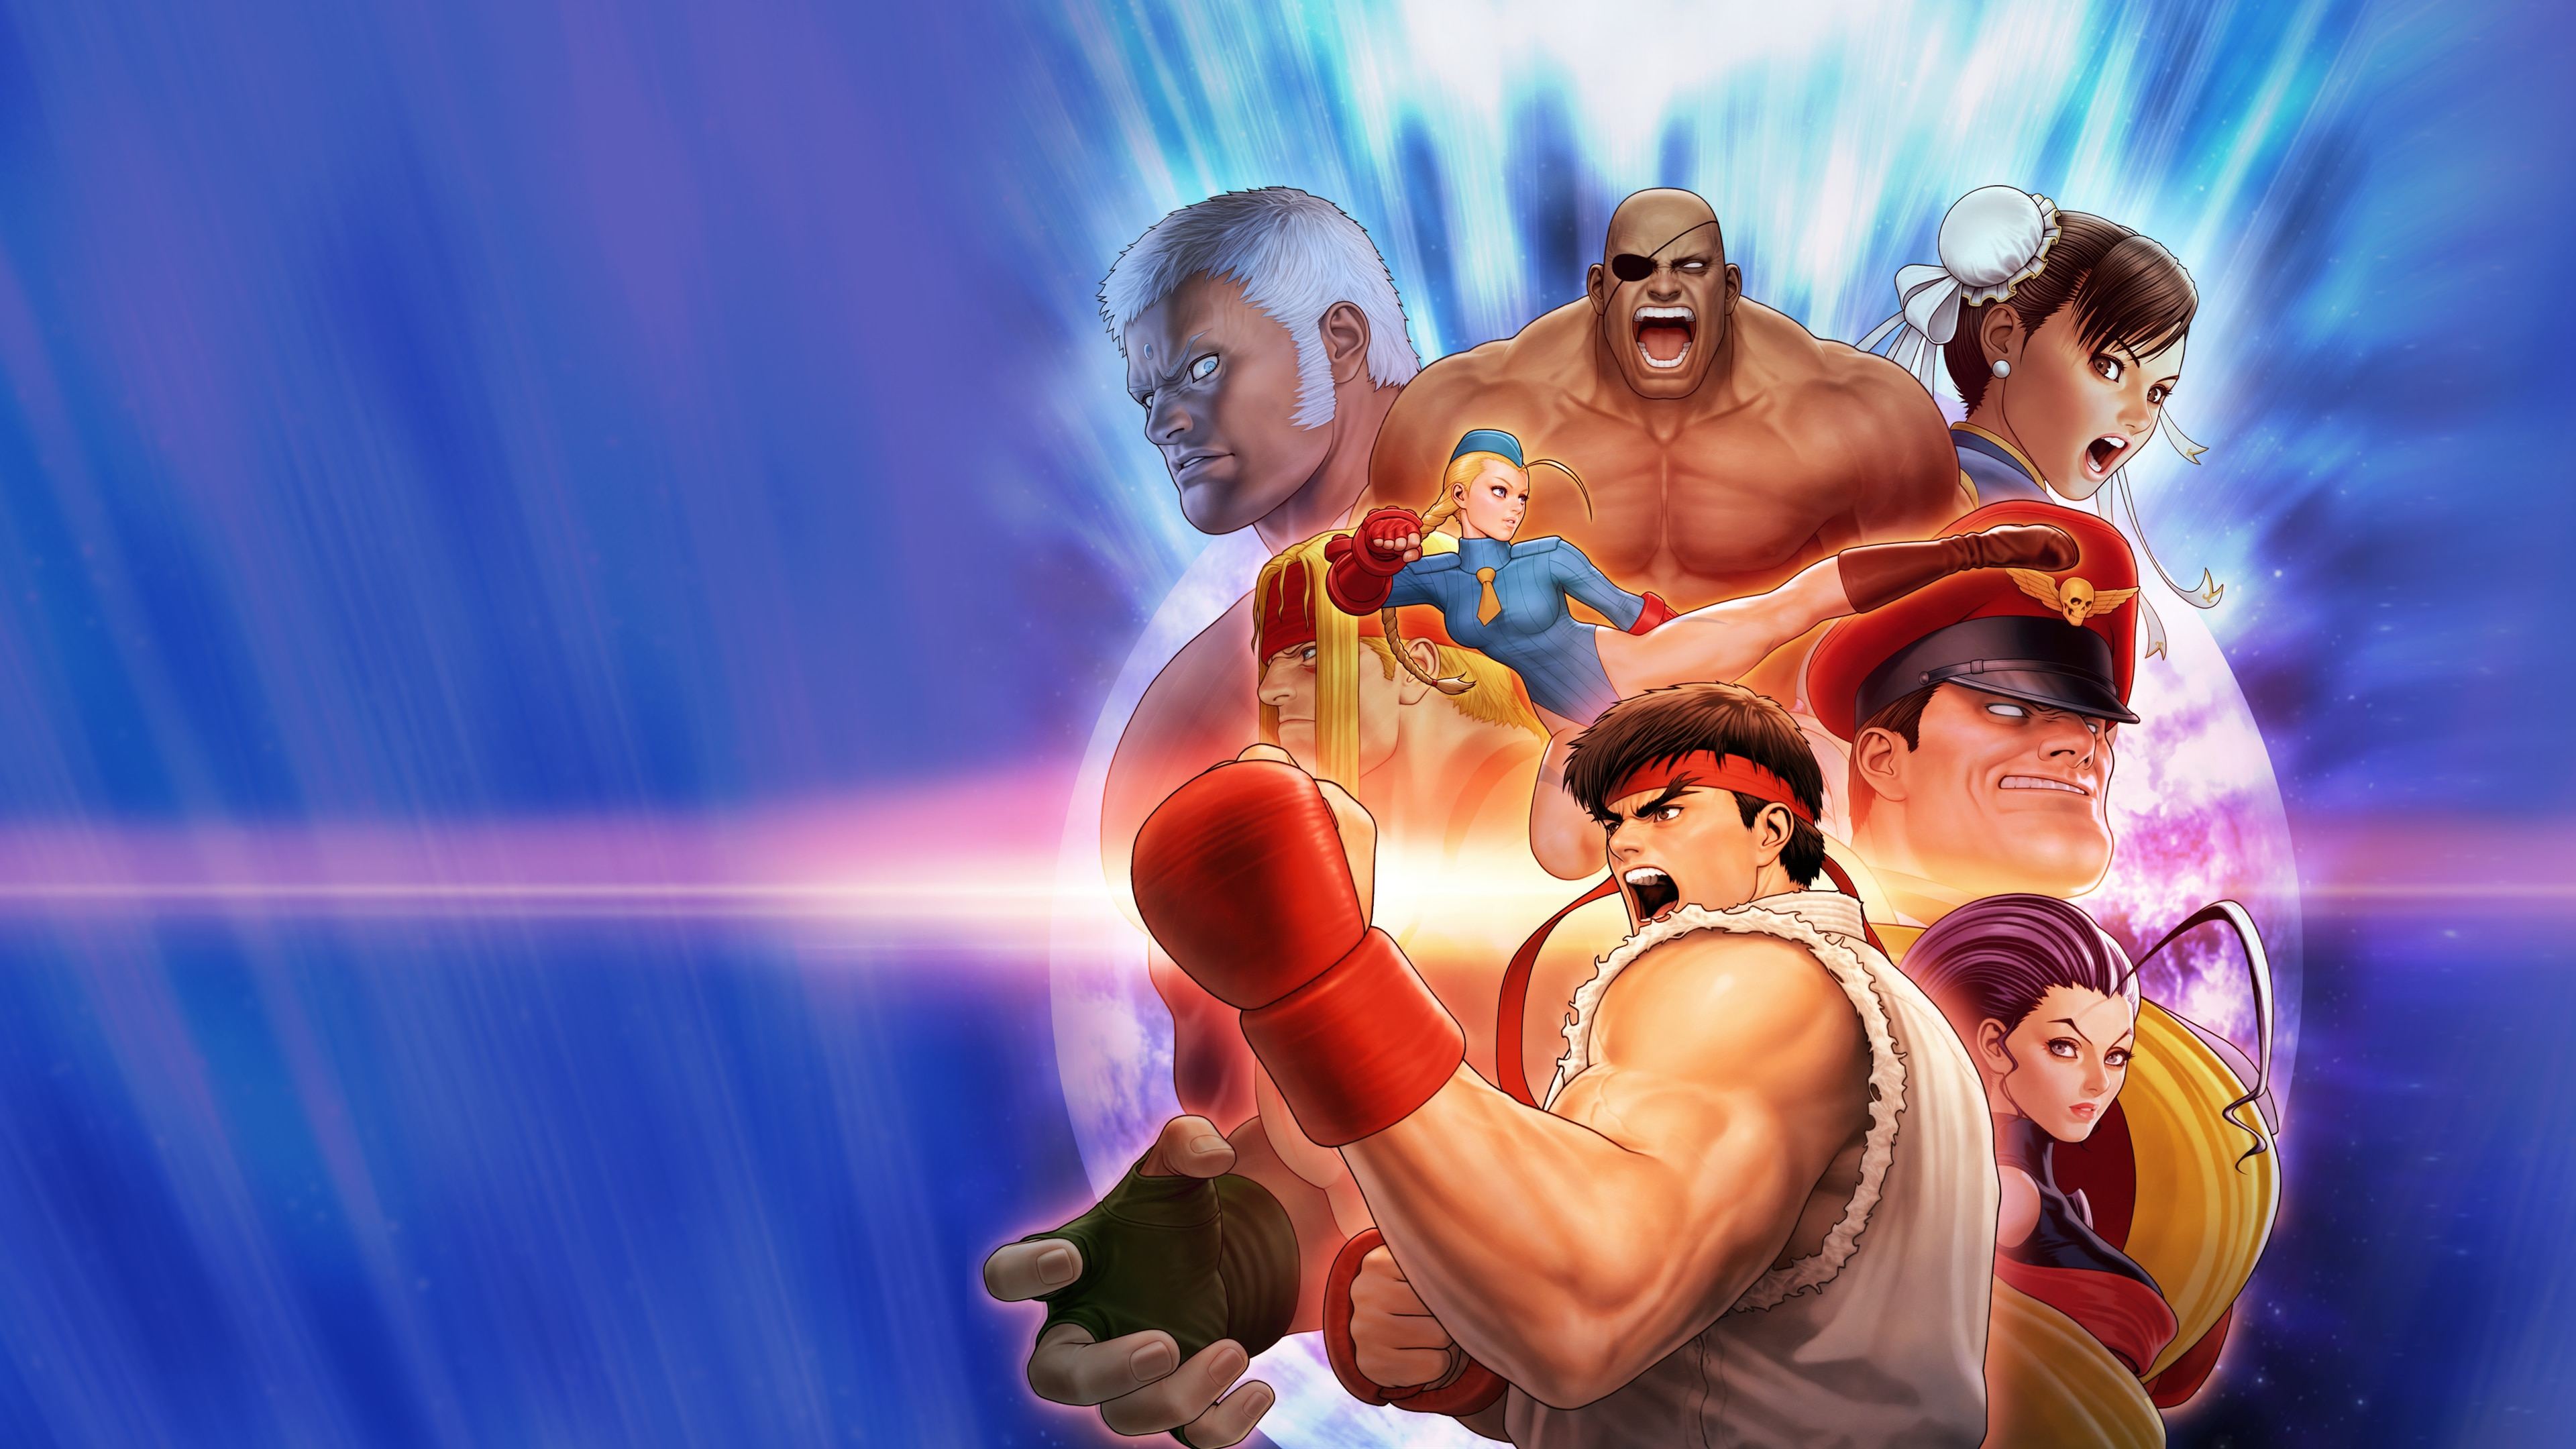 Street Fighter 30th Anniversary Collection (English/Chinese/Korean/Japanese Ver.)